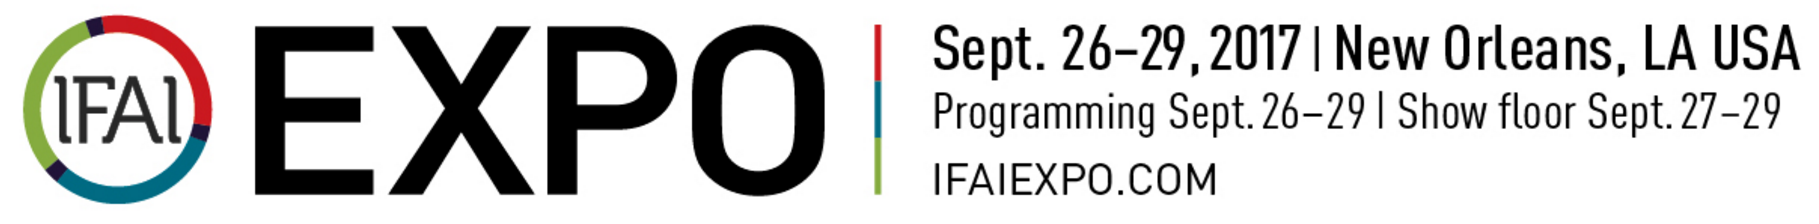 ifai-expo-2017-with-dates